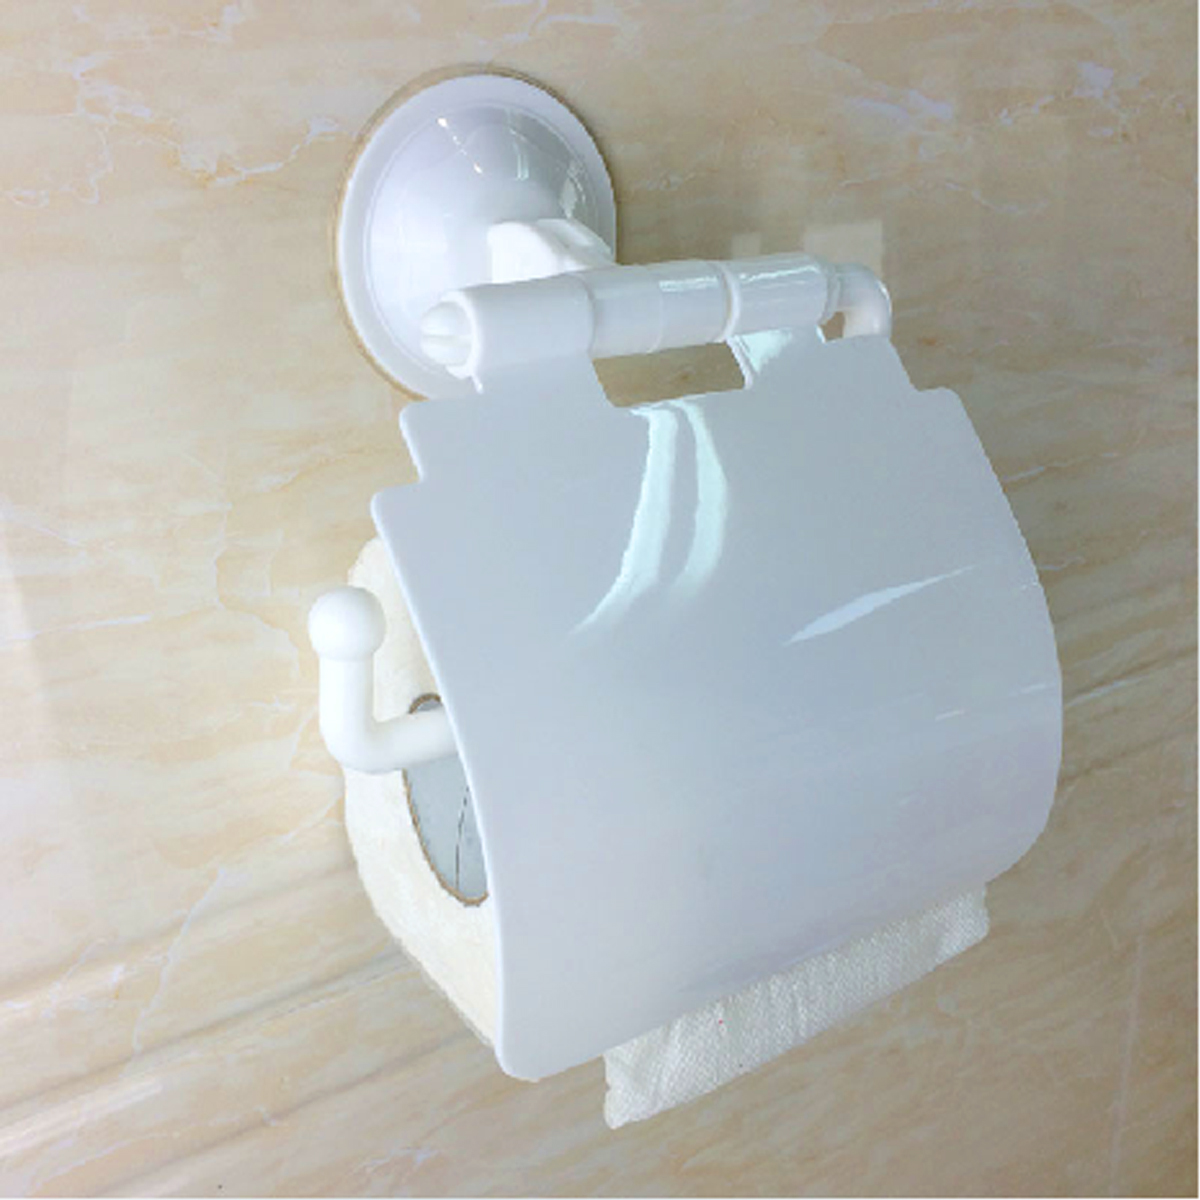 Bathroom Sucker Wall Mounted Toilet Paper Holder Cover